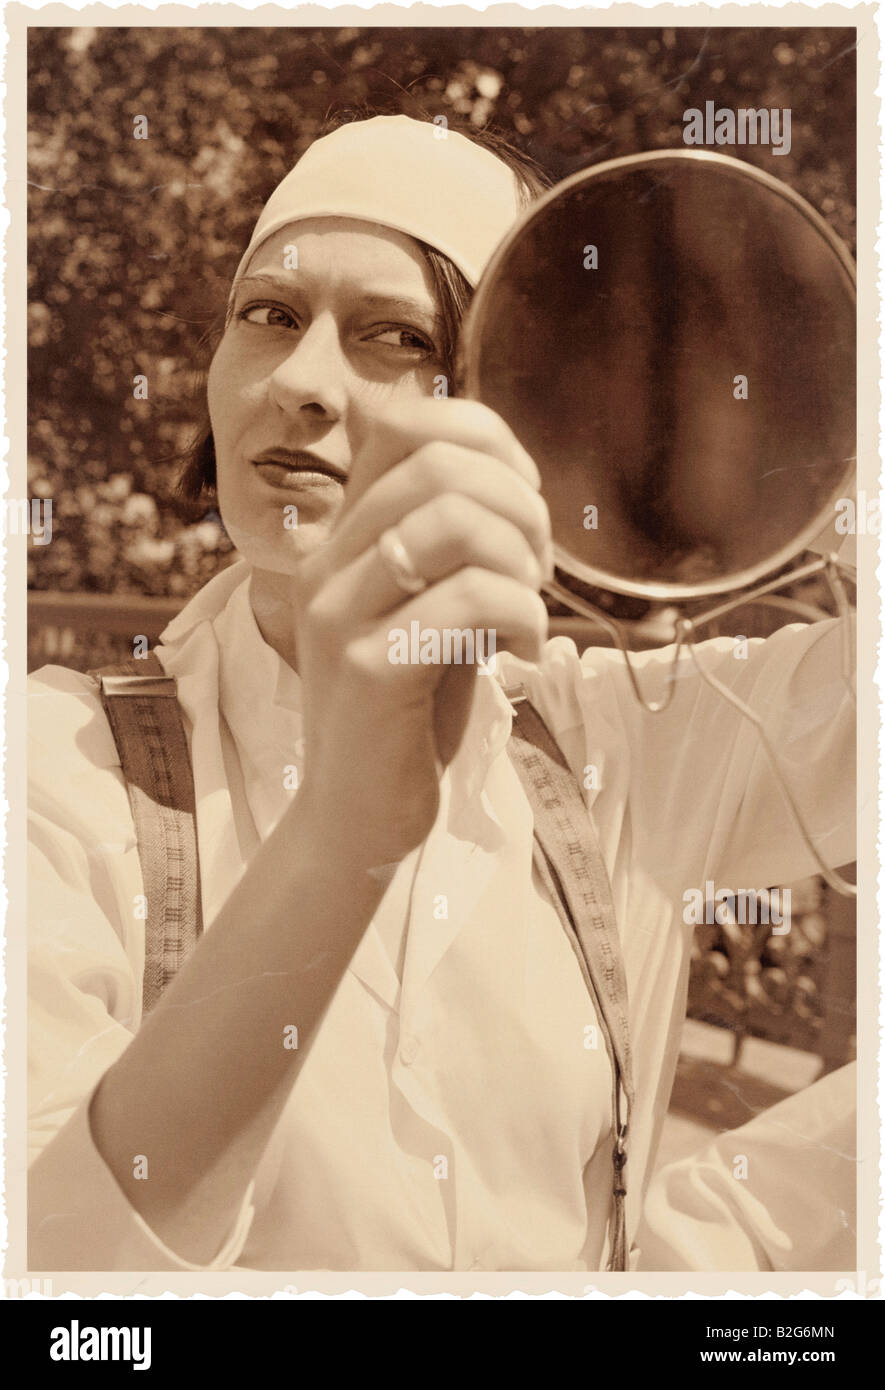 Stock Photo - Dressing 1920s style old fashion vogue model young woman